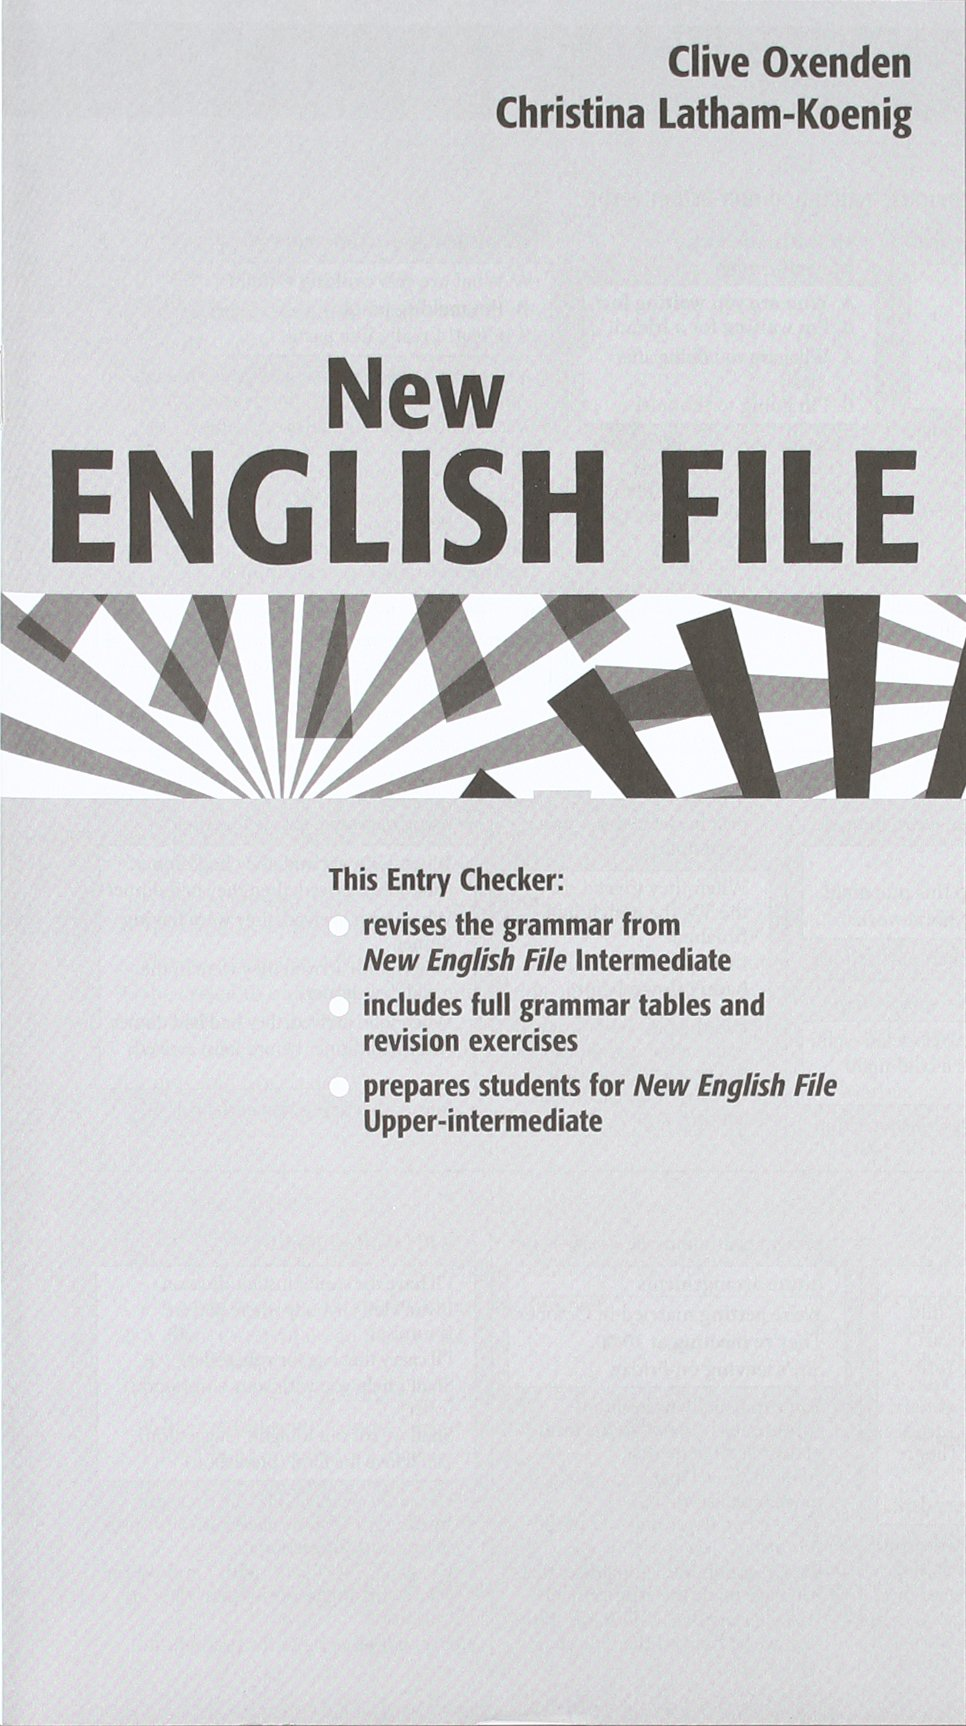 New english file upper intermediate students book and workbook new english file upper intermediate students book and workbook with key pack amazon varios participantes 9780194519410 books fandeluxe Images